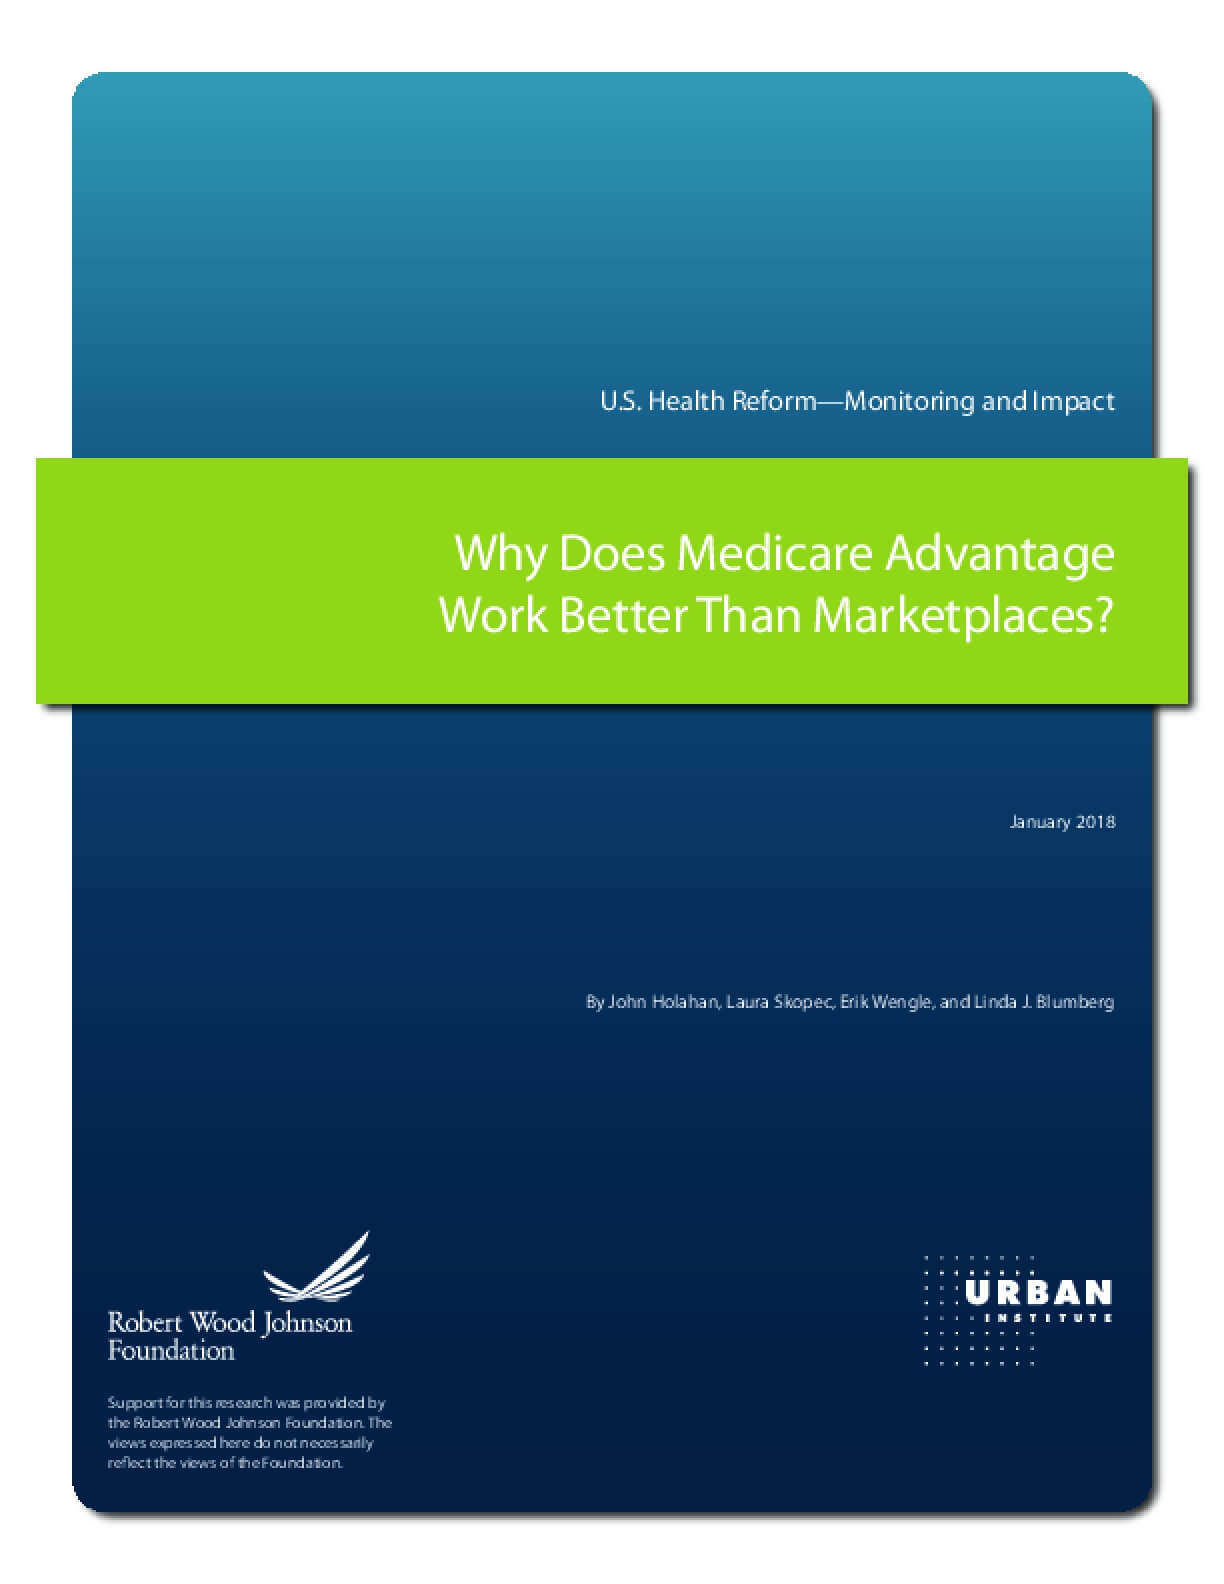 Why Does Medicare Advantage Work Better Than Marketplaces?